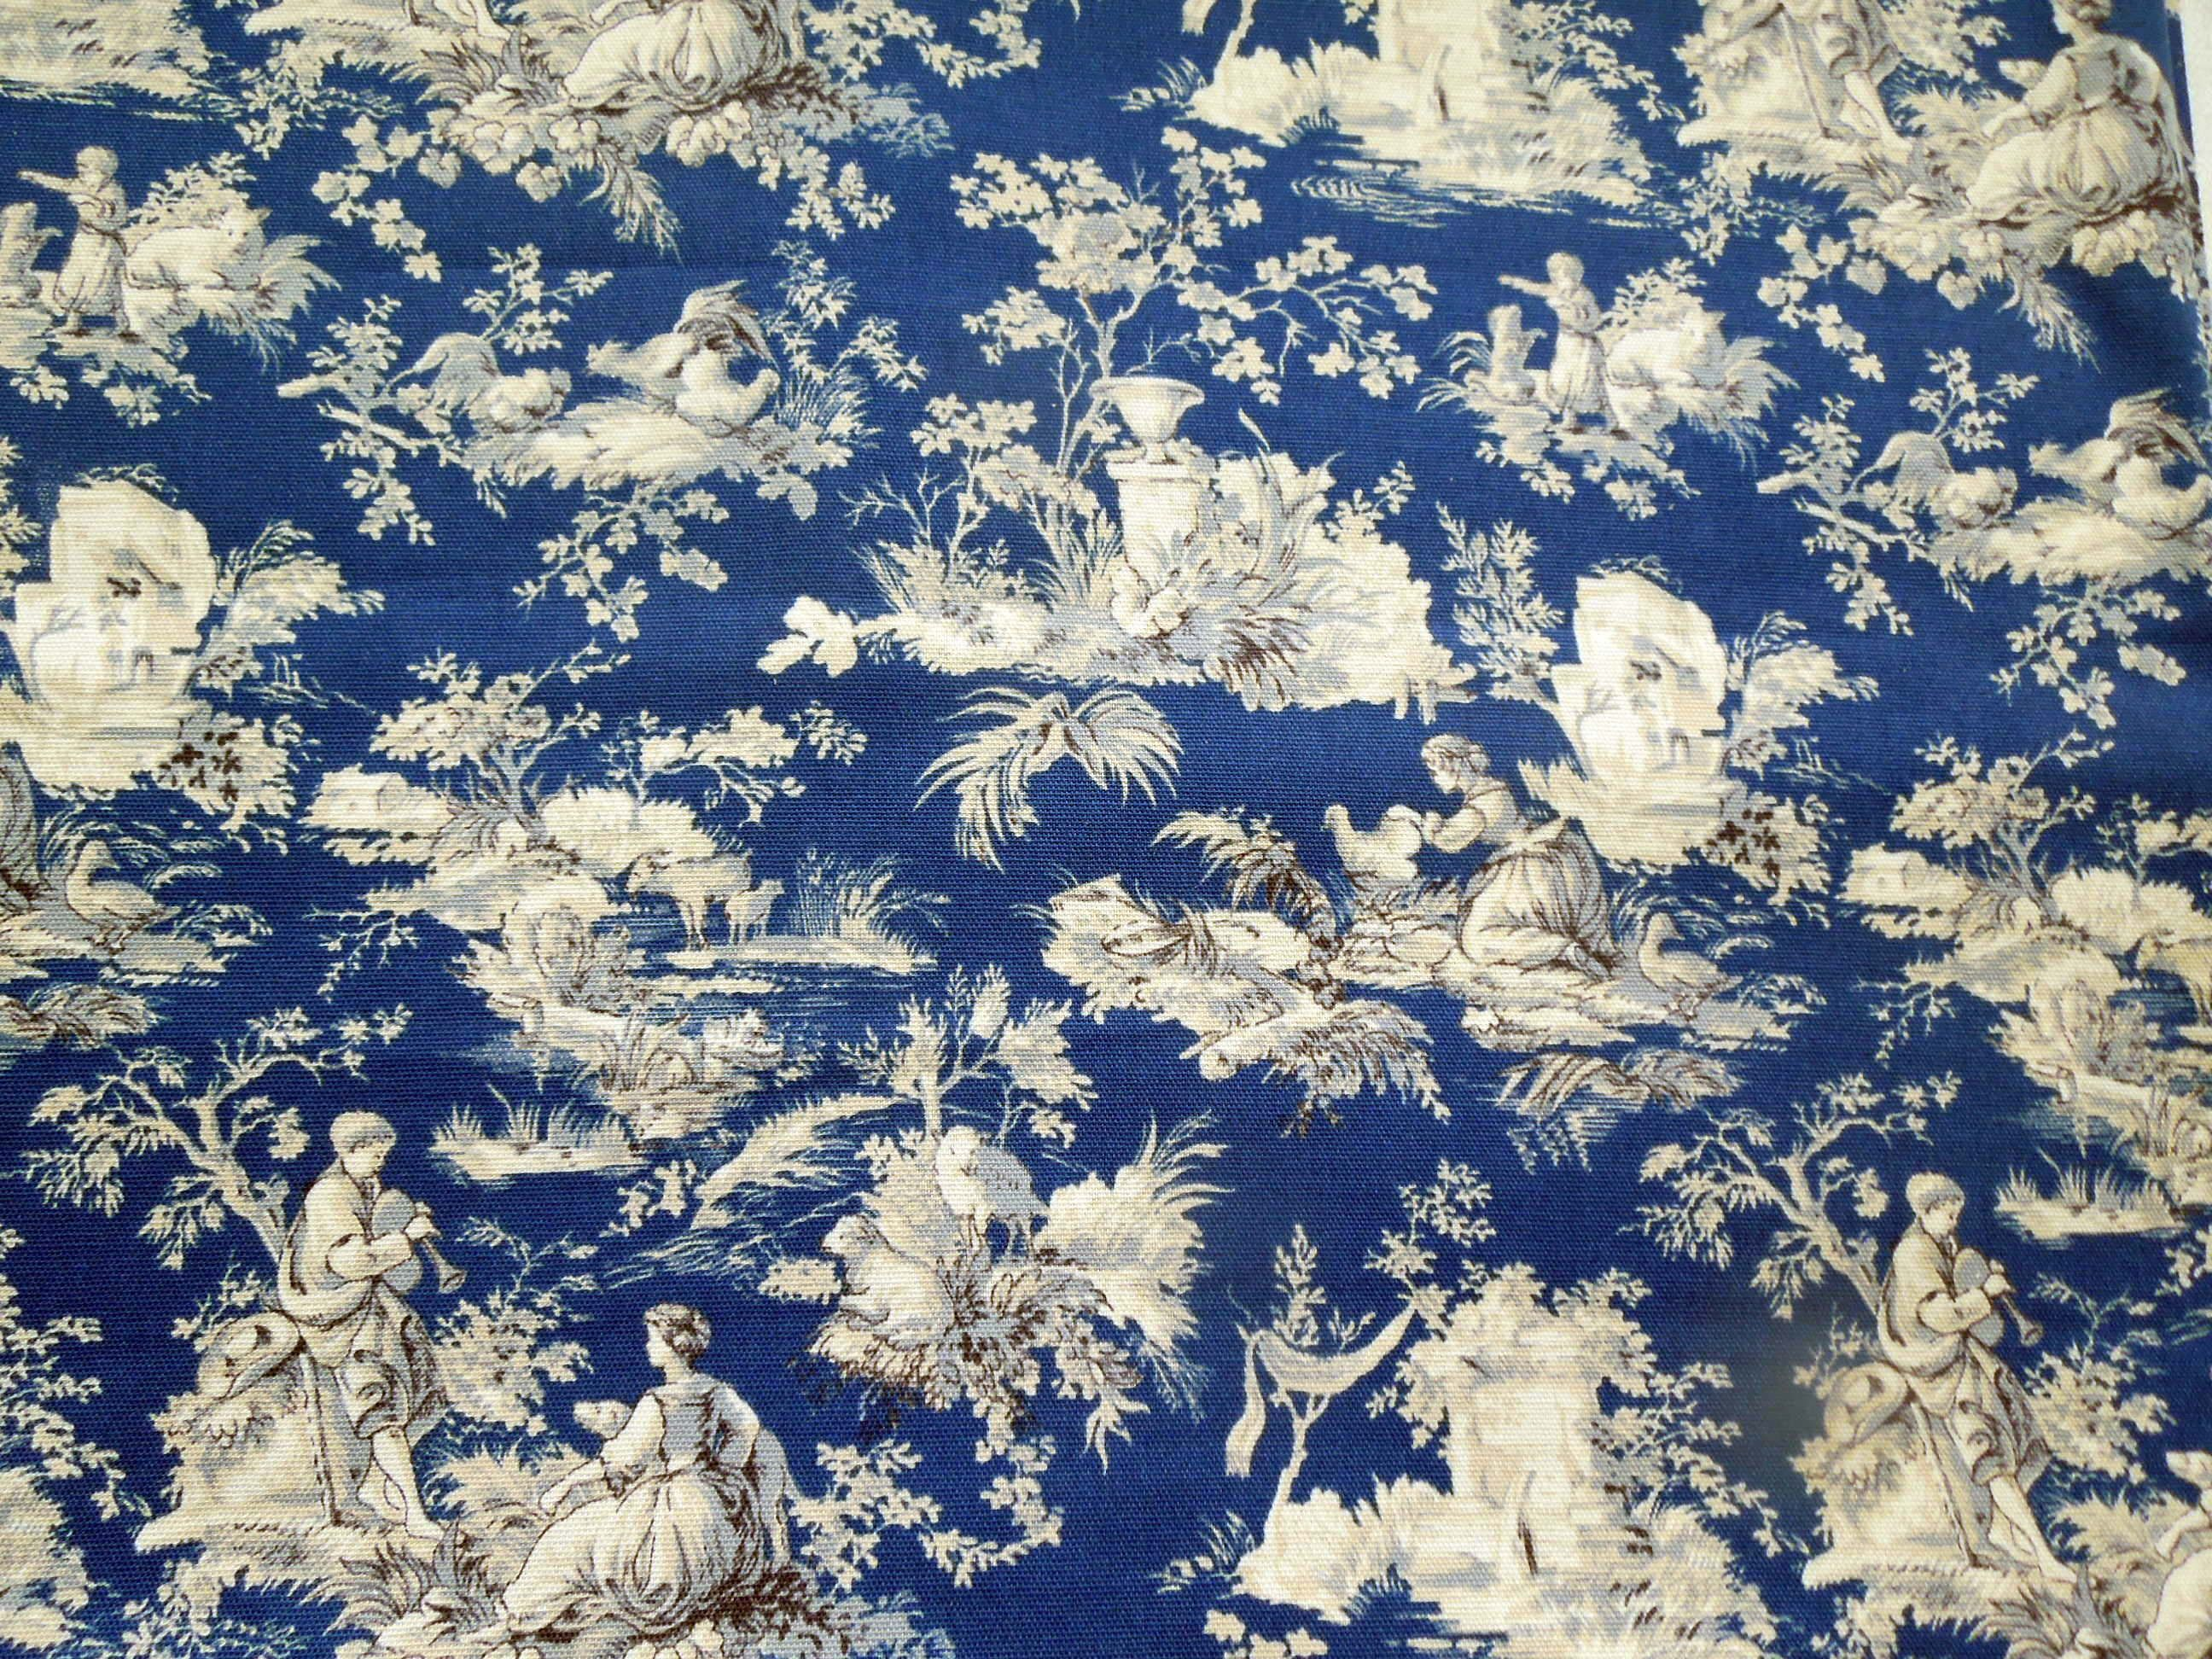 Toile Toile Blue Toile French Romantic Blue Fabric Printed by Spoonflower BTY